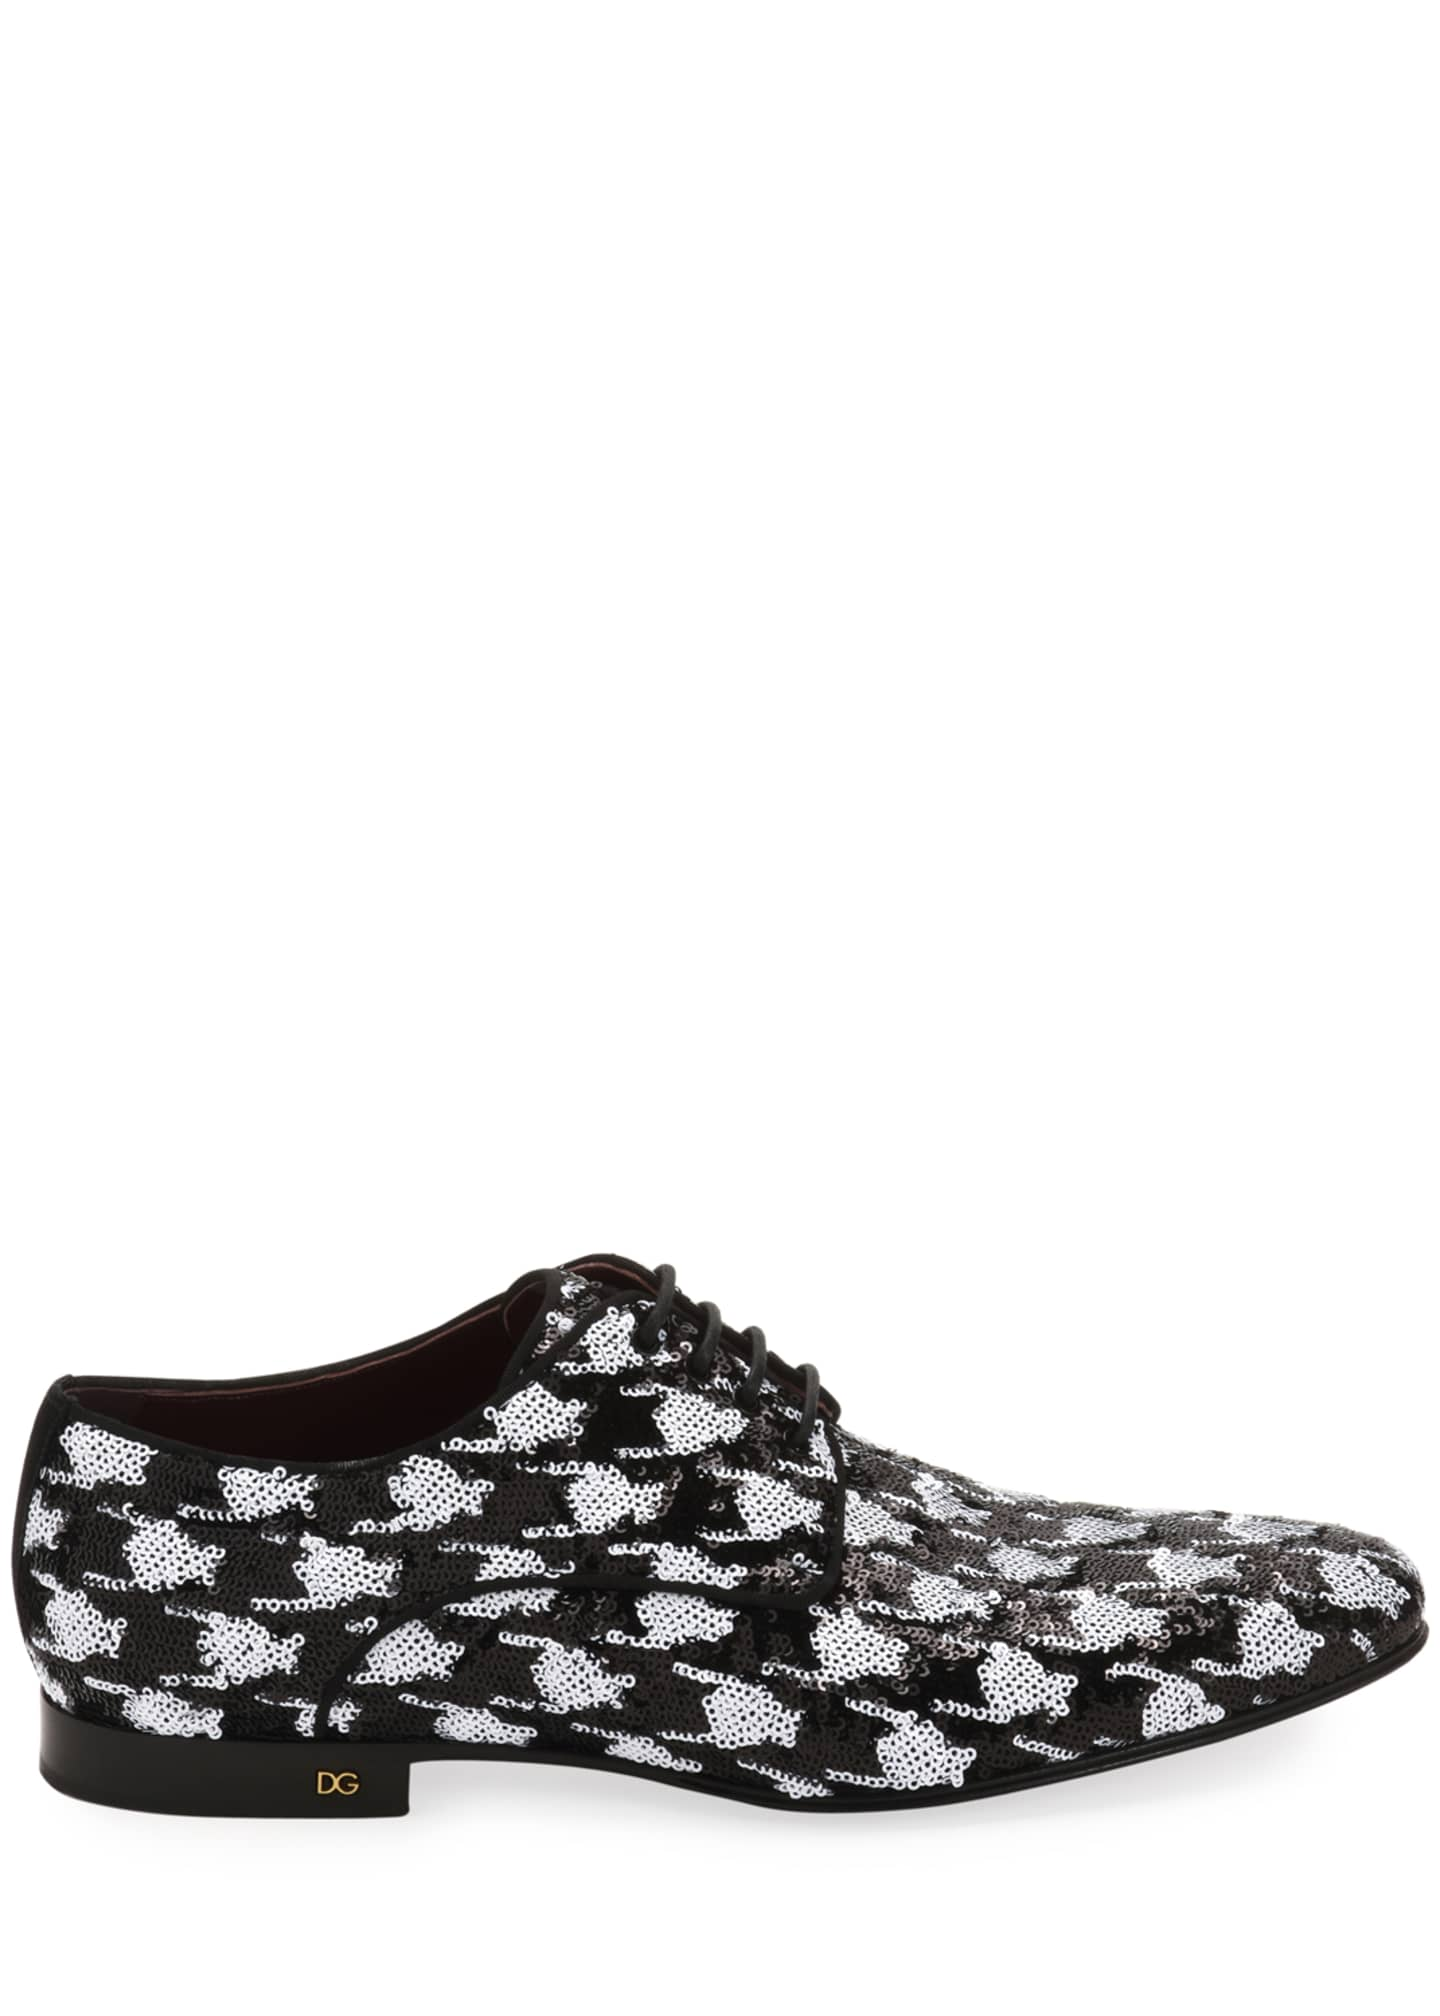 Image 2 of 3: Men's Two-Tone Patterned Sequin Derby Shoes